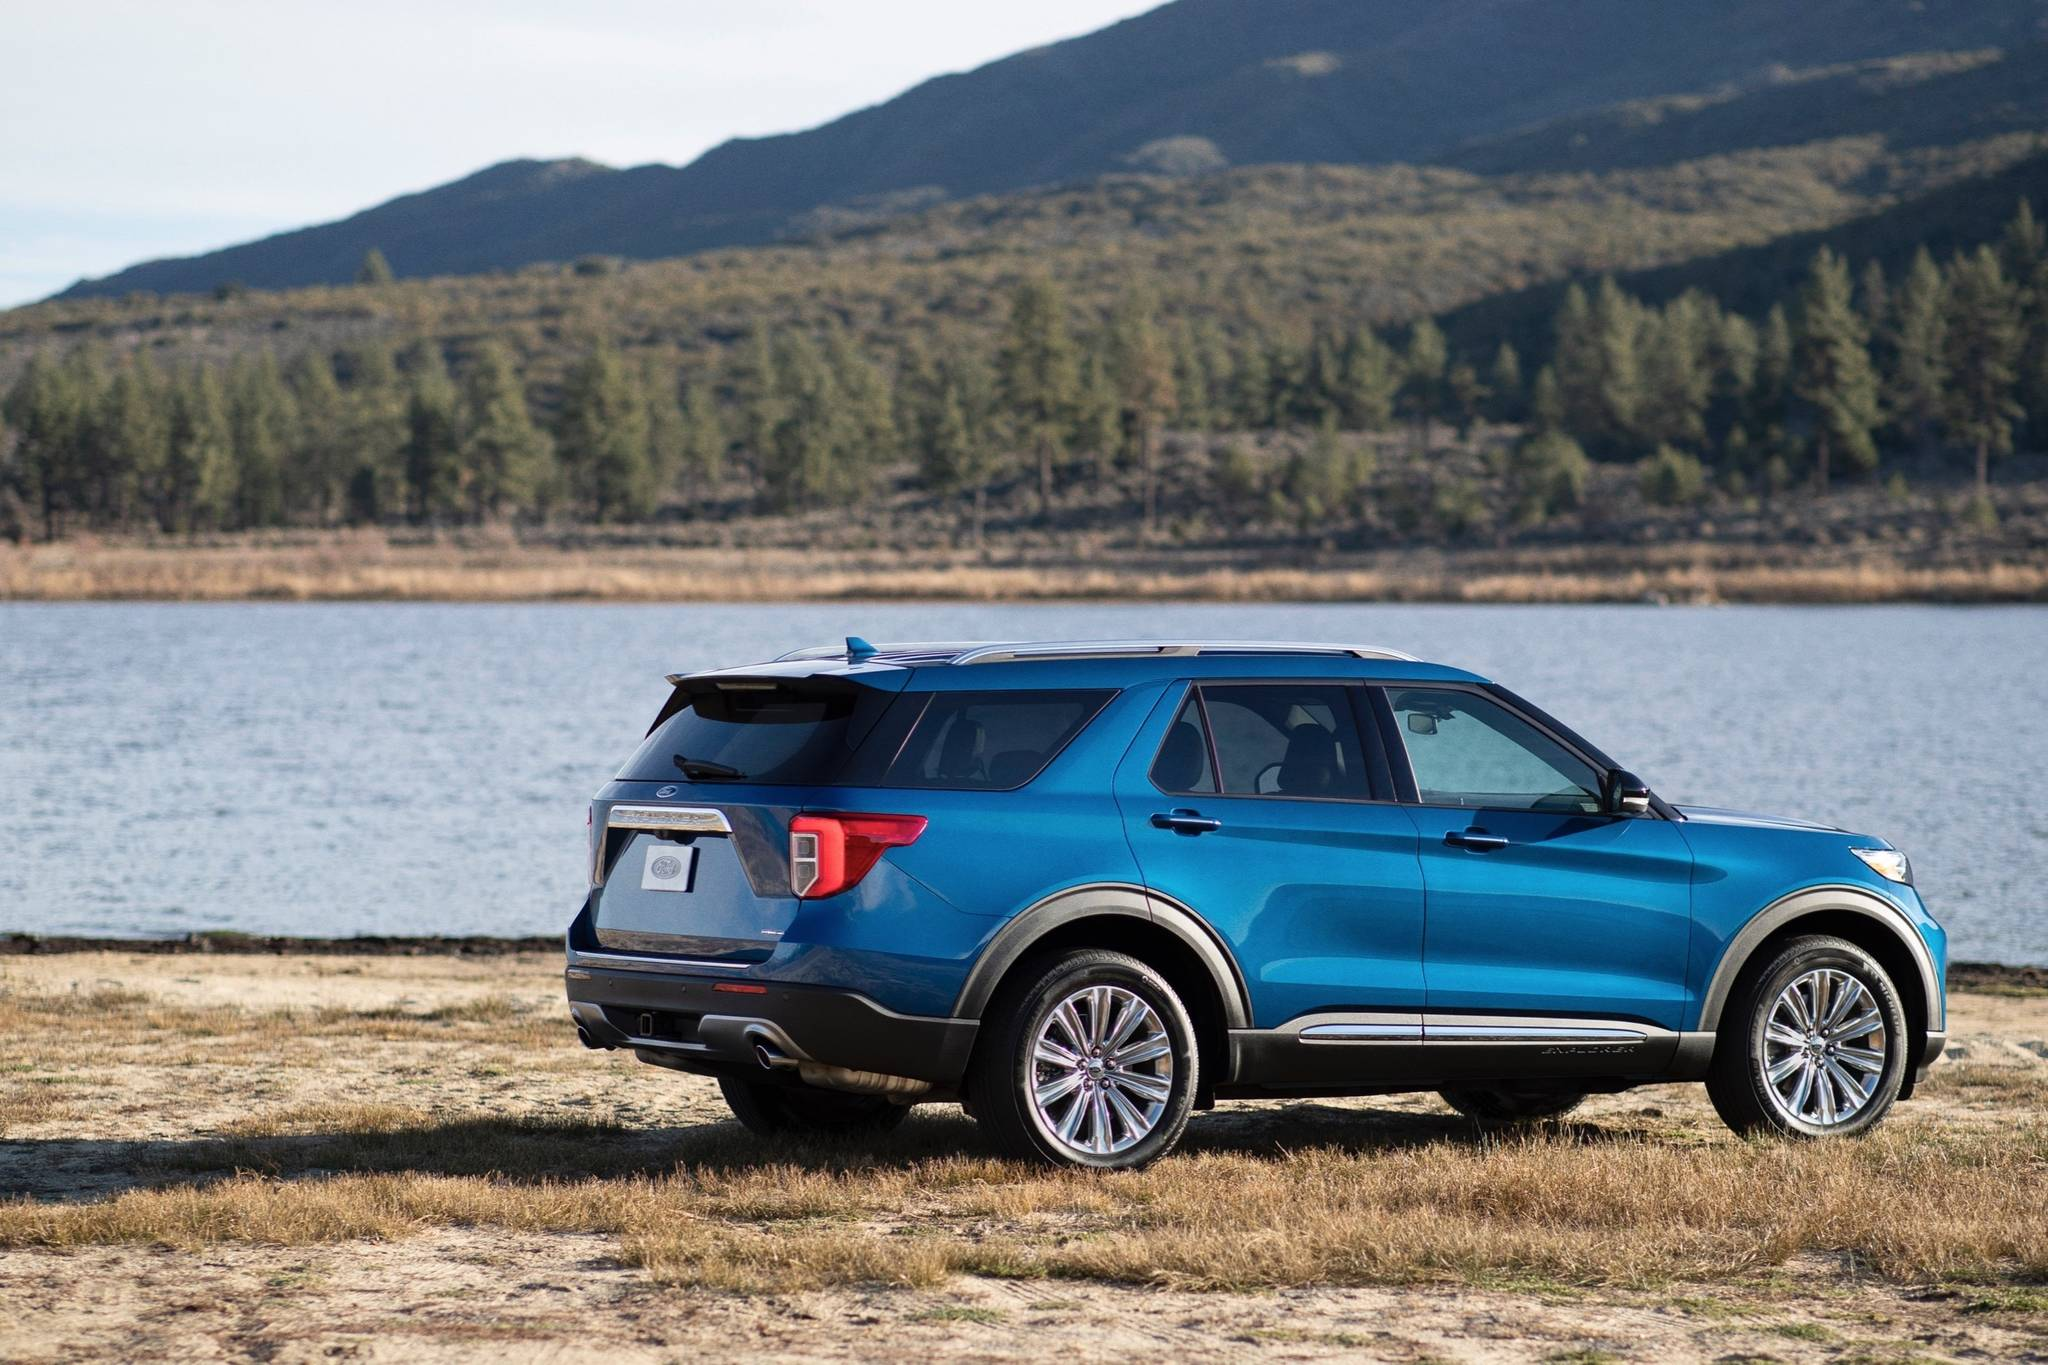 The Hybrid combines a twin-turbocharged V-6 with an electric motor (net output is 318 horsepower), but it's only available with the Limited trim. Photo: Ford